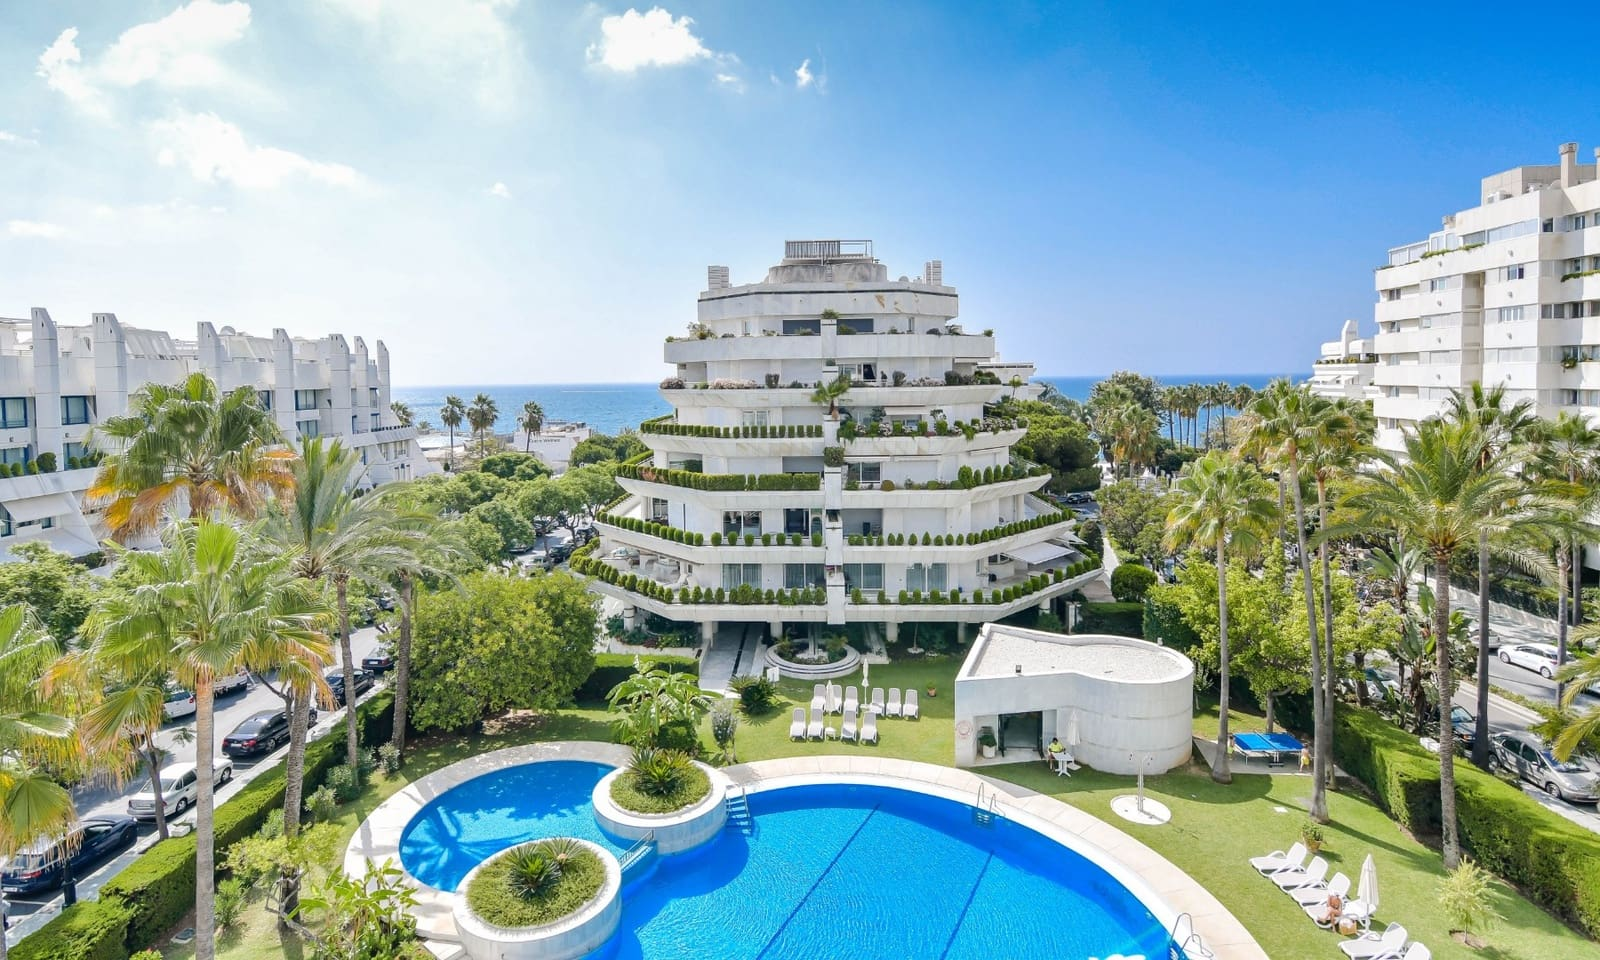 3 bedroom Apartment for sale in Marbella with pool garage - € 1,475,000 (Ref: 4125933)